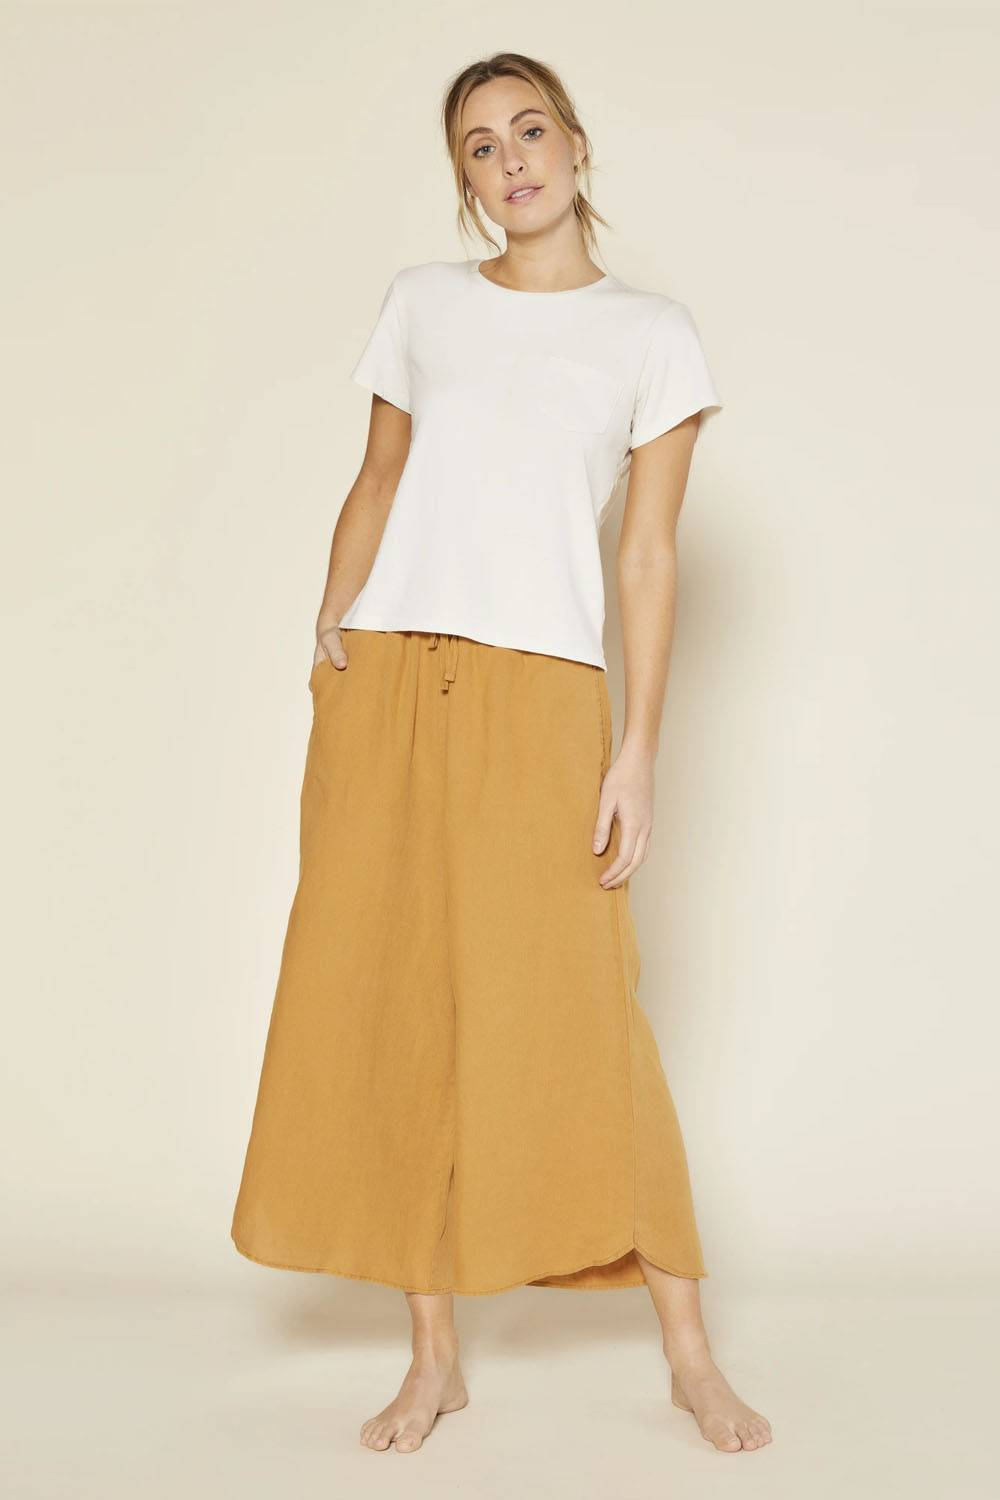 outerknown affordable bohemian harem pants